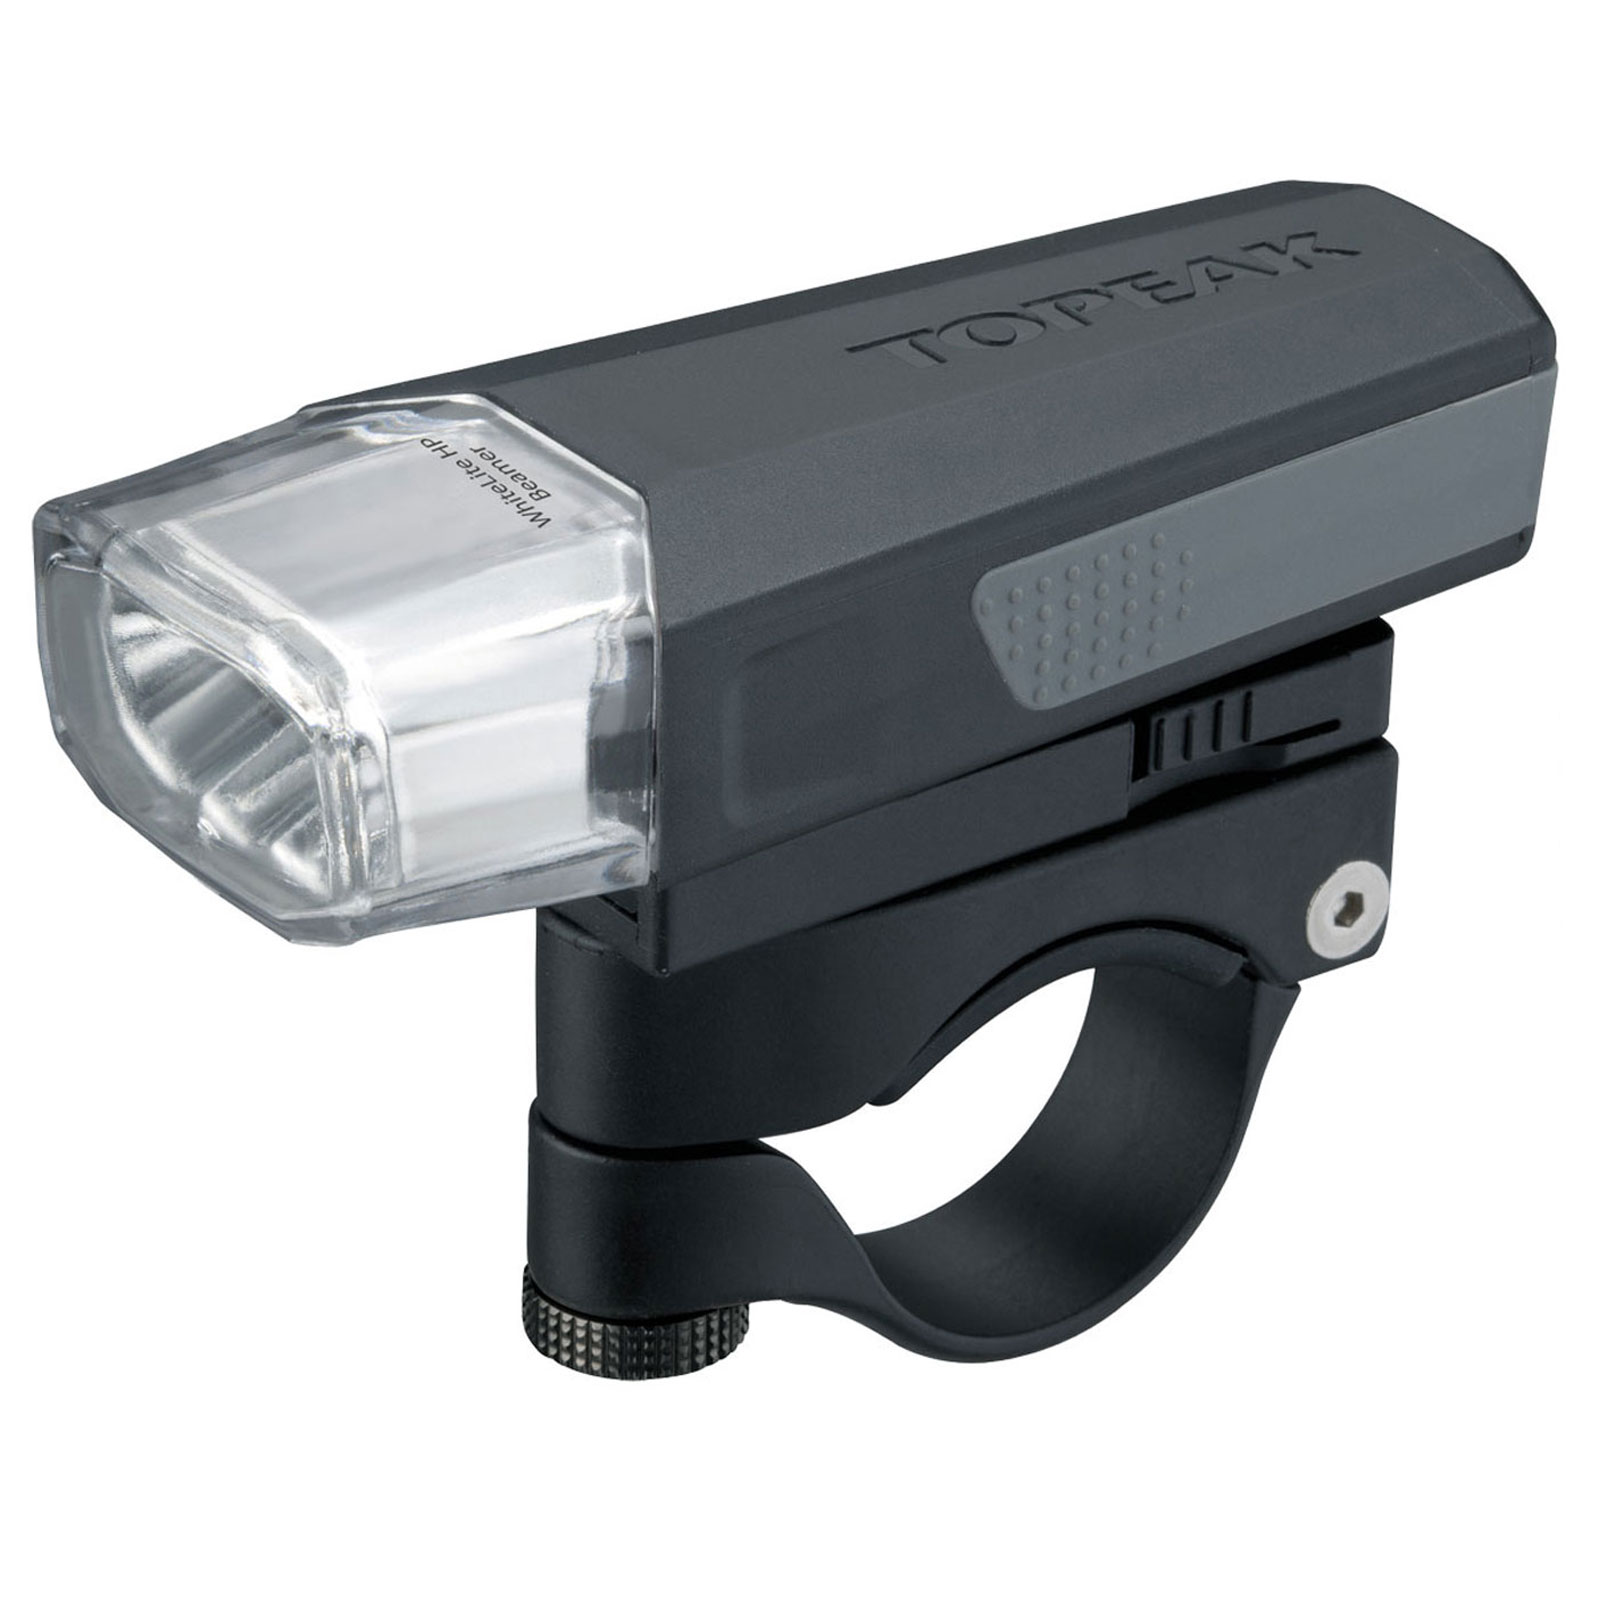 Topeak WhiteLite HP Beamer 3 Bright LED Front Mounted Bike Light and Flashlight